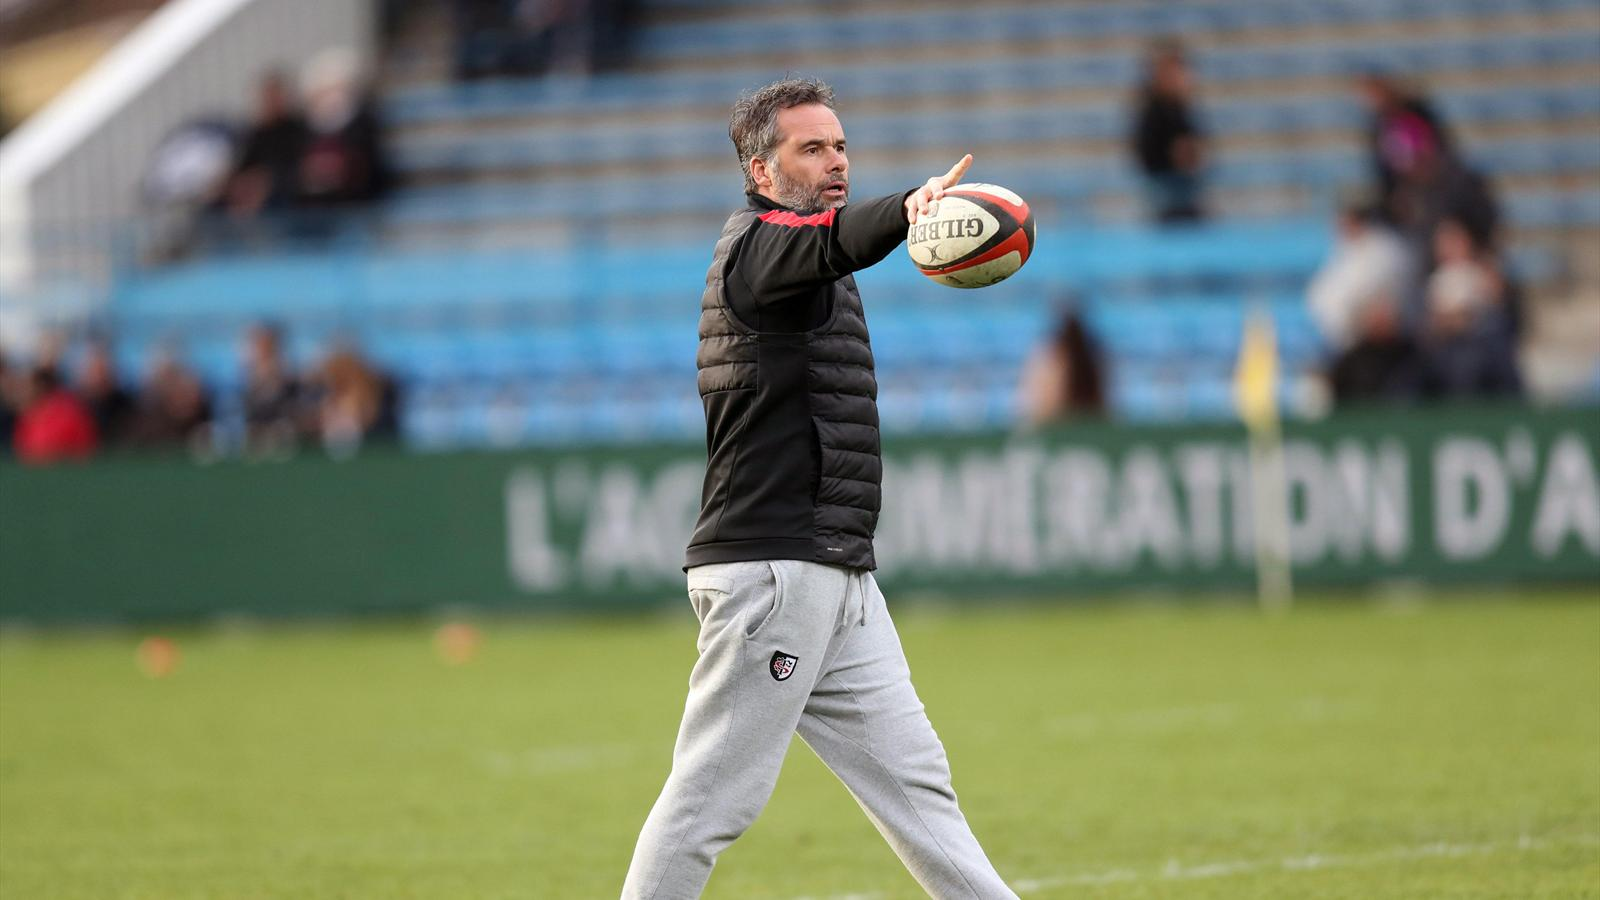 """Test contest - Mola (Barbarians coach): """"On power, there is a small difference in life"""""""